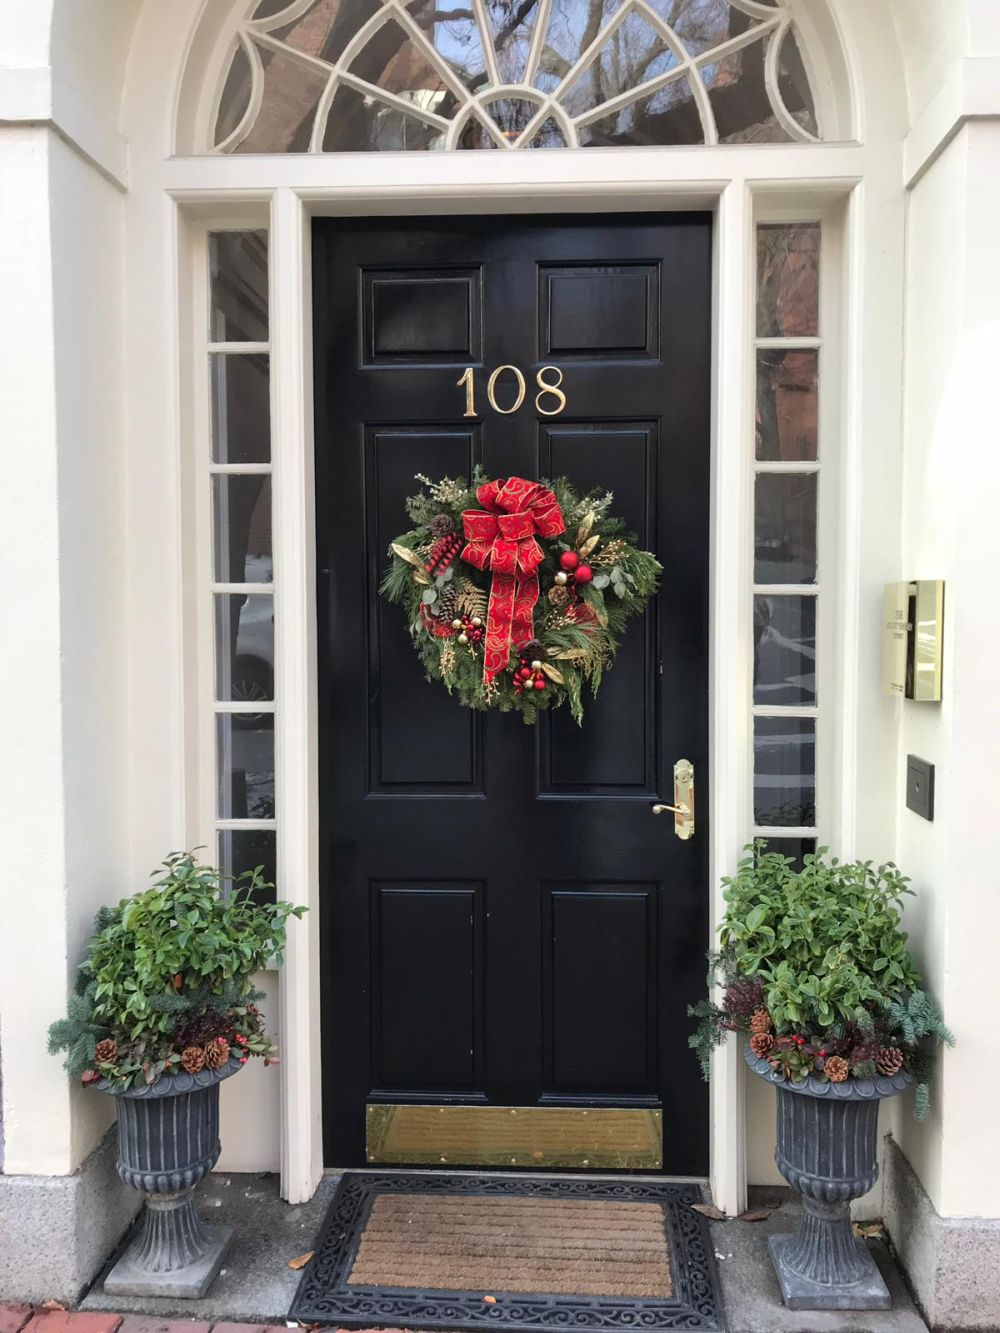 The wreath can come as a seasonal addition to your existing front door decor